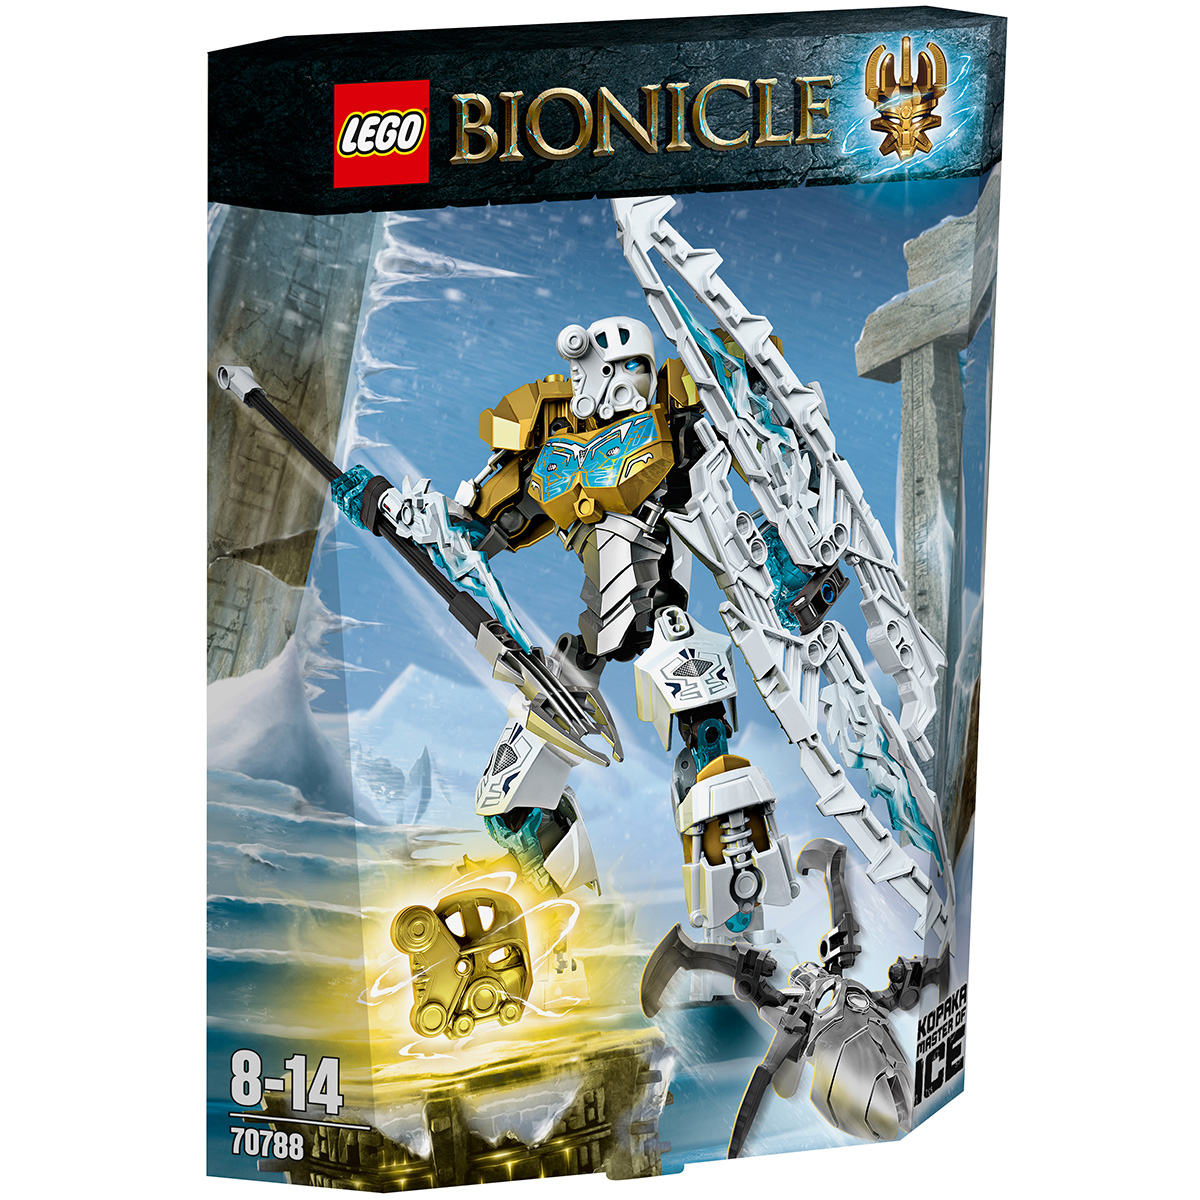 Lego Bionicle 70788 - Than bang Kopaka